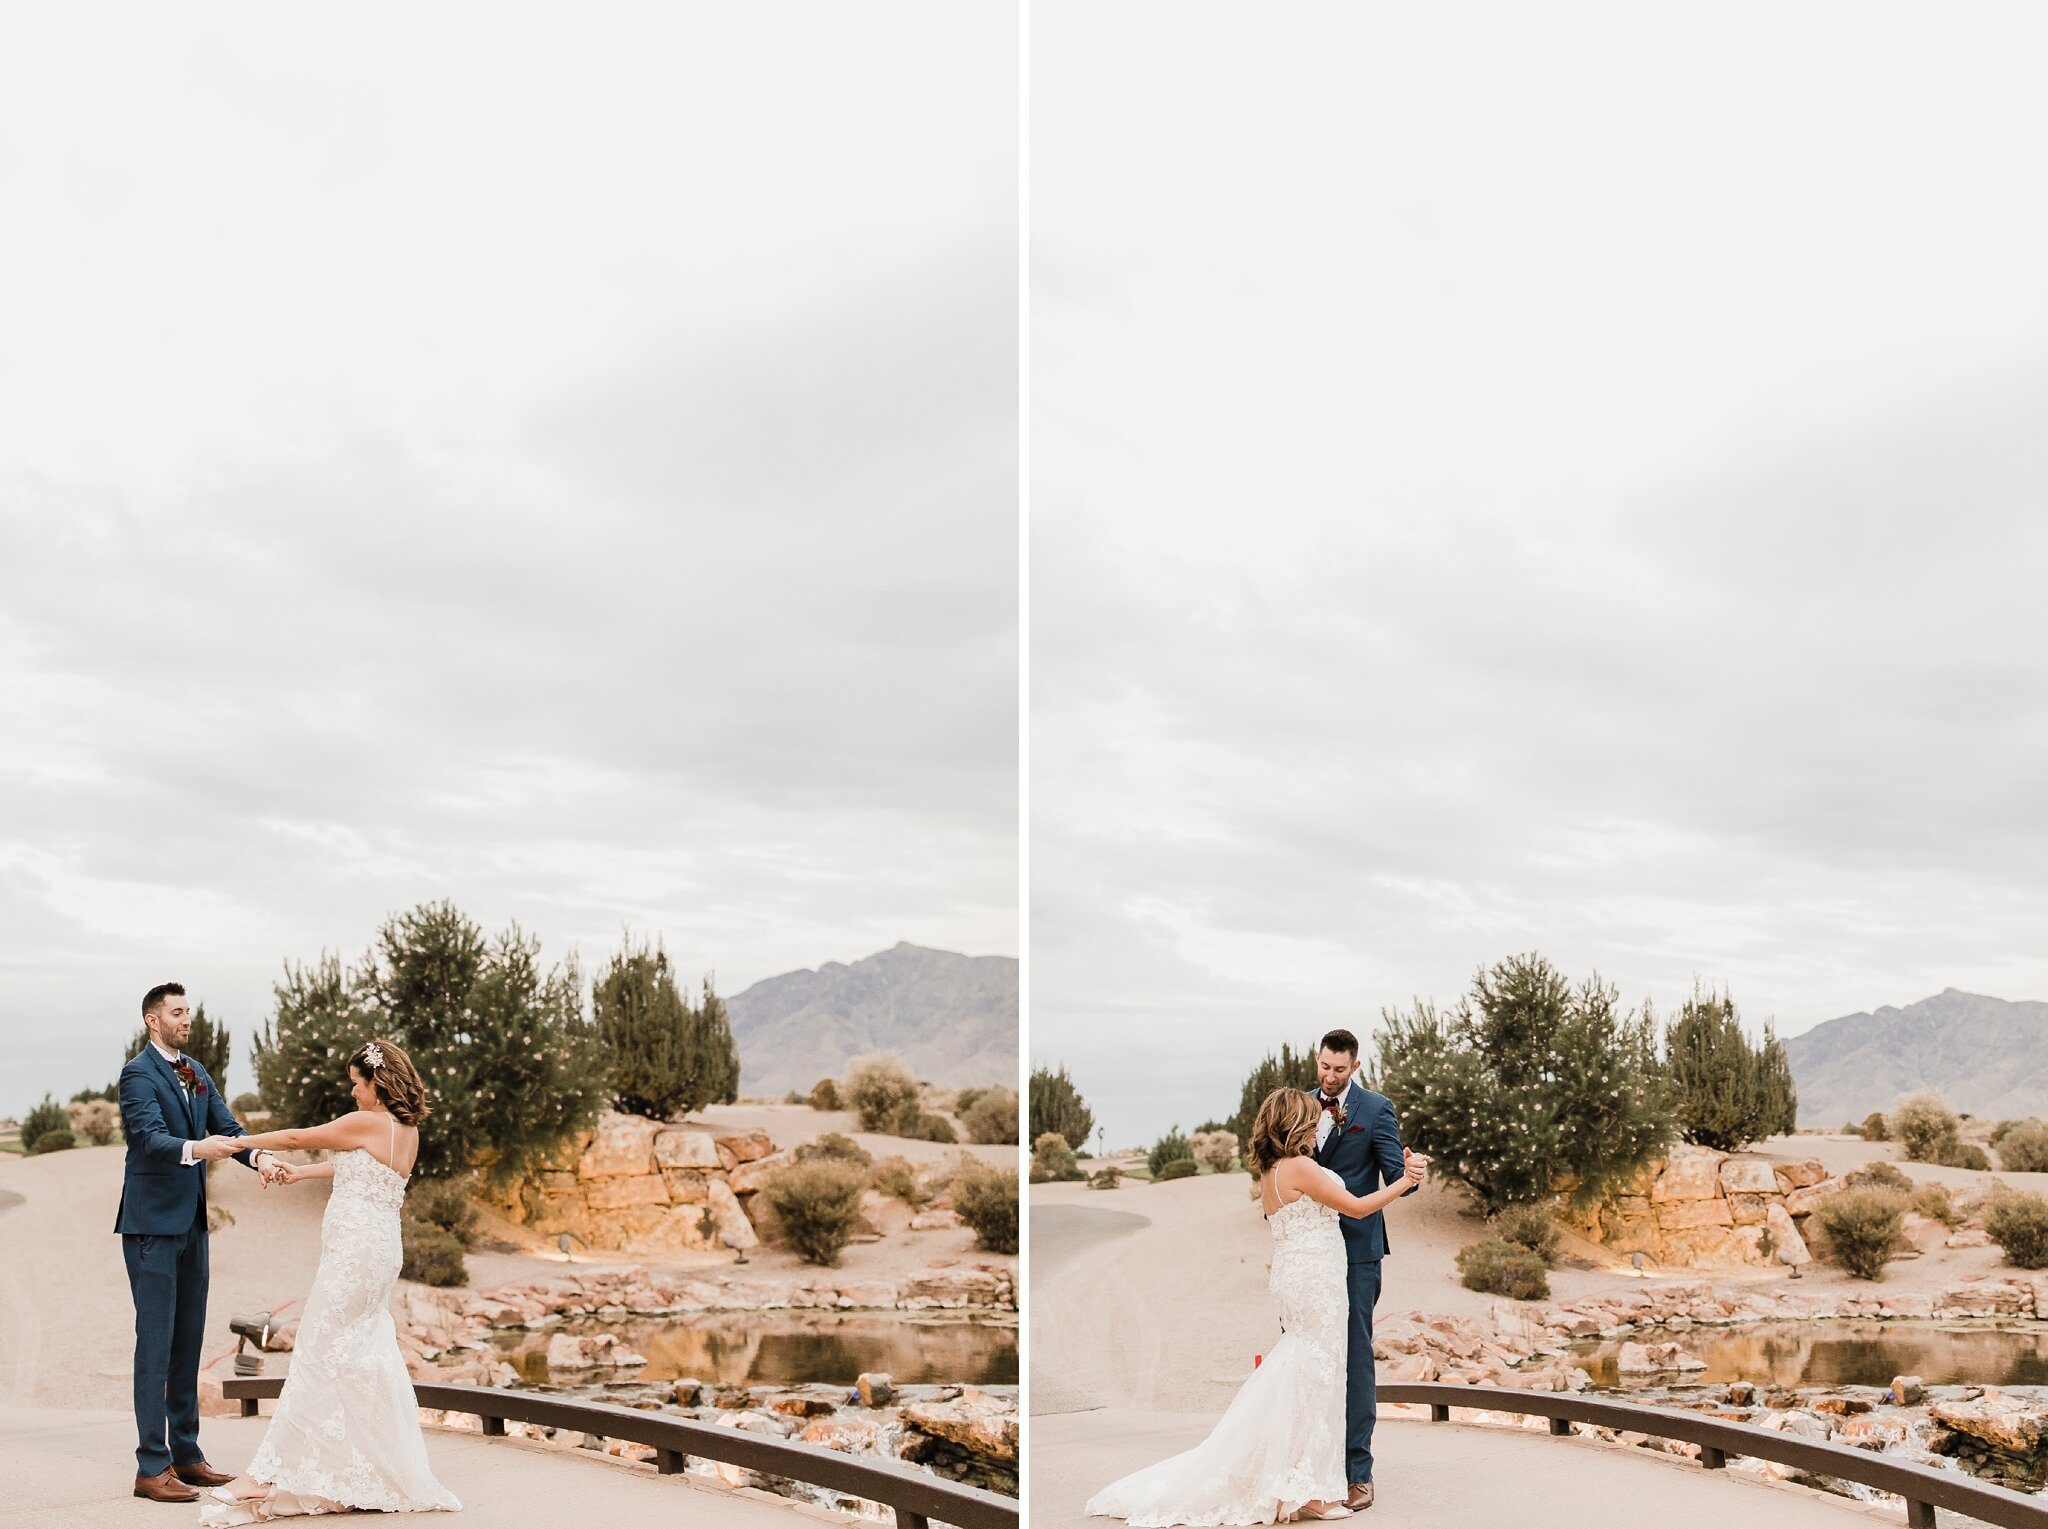 Alicia+lucia+photography+-+albuquerque+wedding+photographer+-+santa+fe+wedding+photography+-+new+mexico+wedding+photographer+-+new+mexico+wedding+-+albuquerque+wedding+-+sandia+wedding+-+sandia+event+center+wedding_0079.jpg